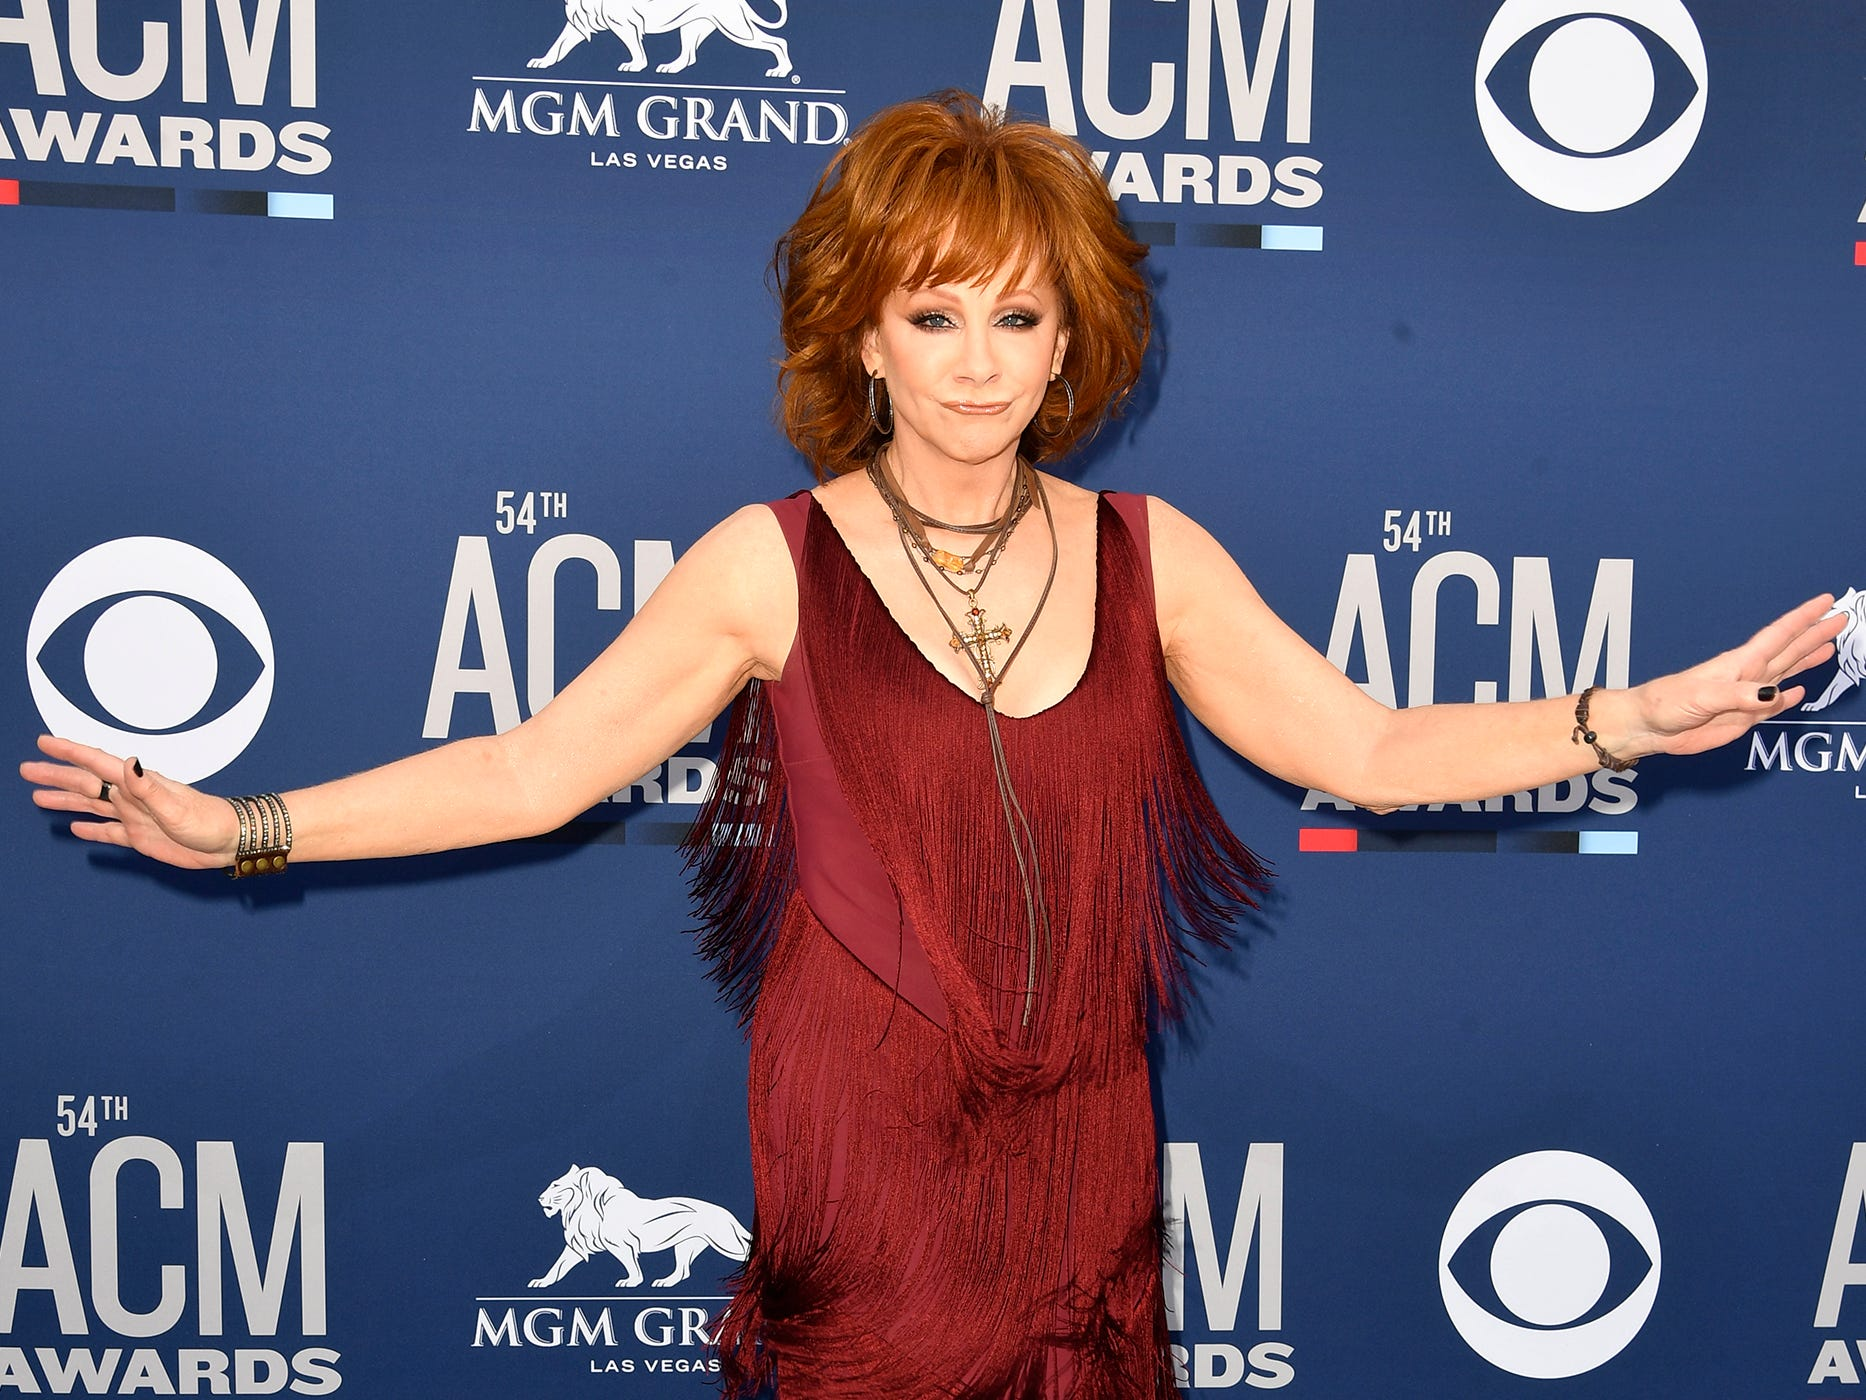 Reba McEntire walks the red carpet at the 54TH Academy of Country Music Awards Sunday, April 7, 2019, in Las Vegas, Nev.